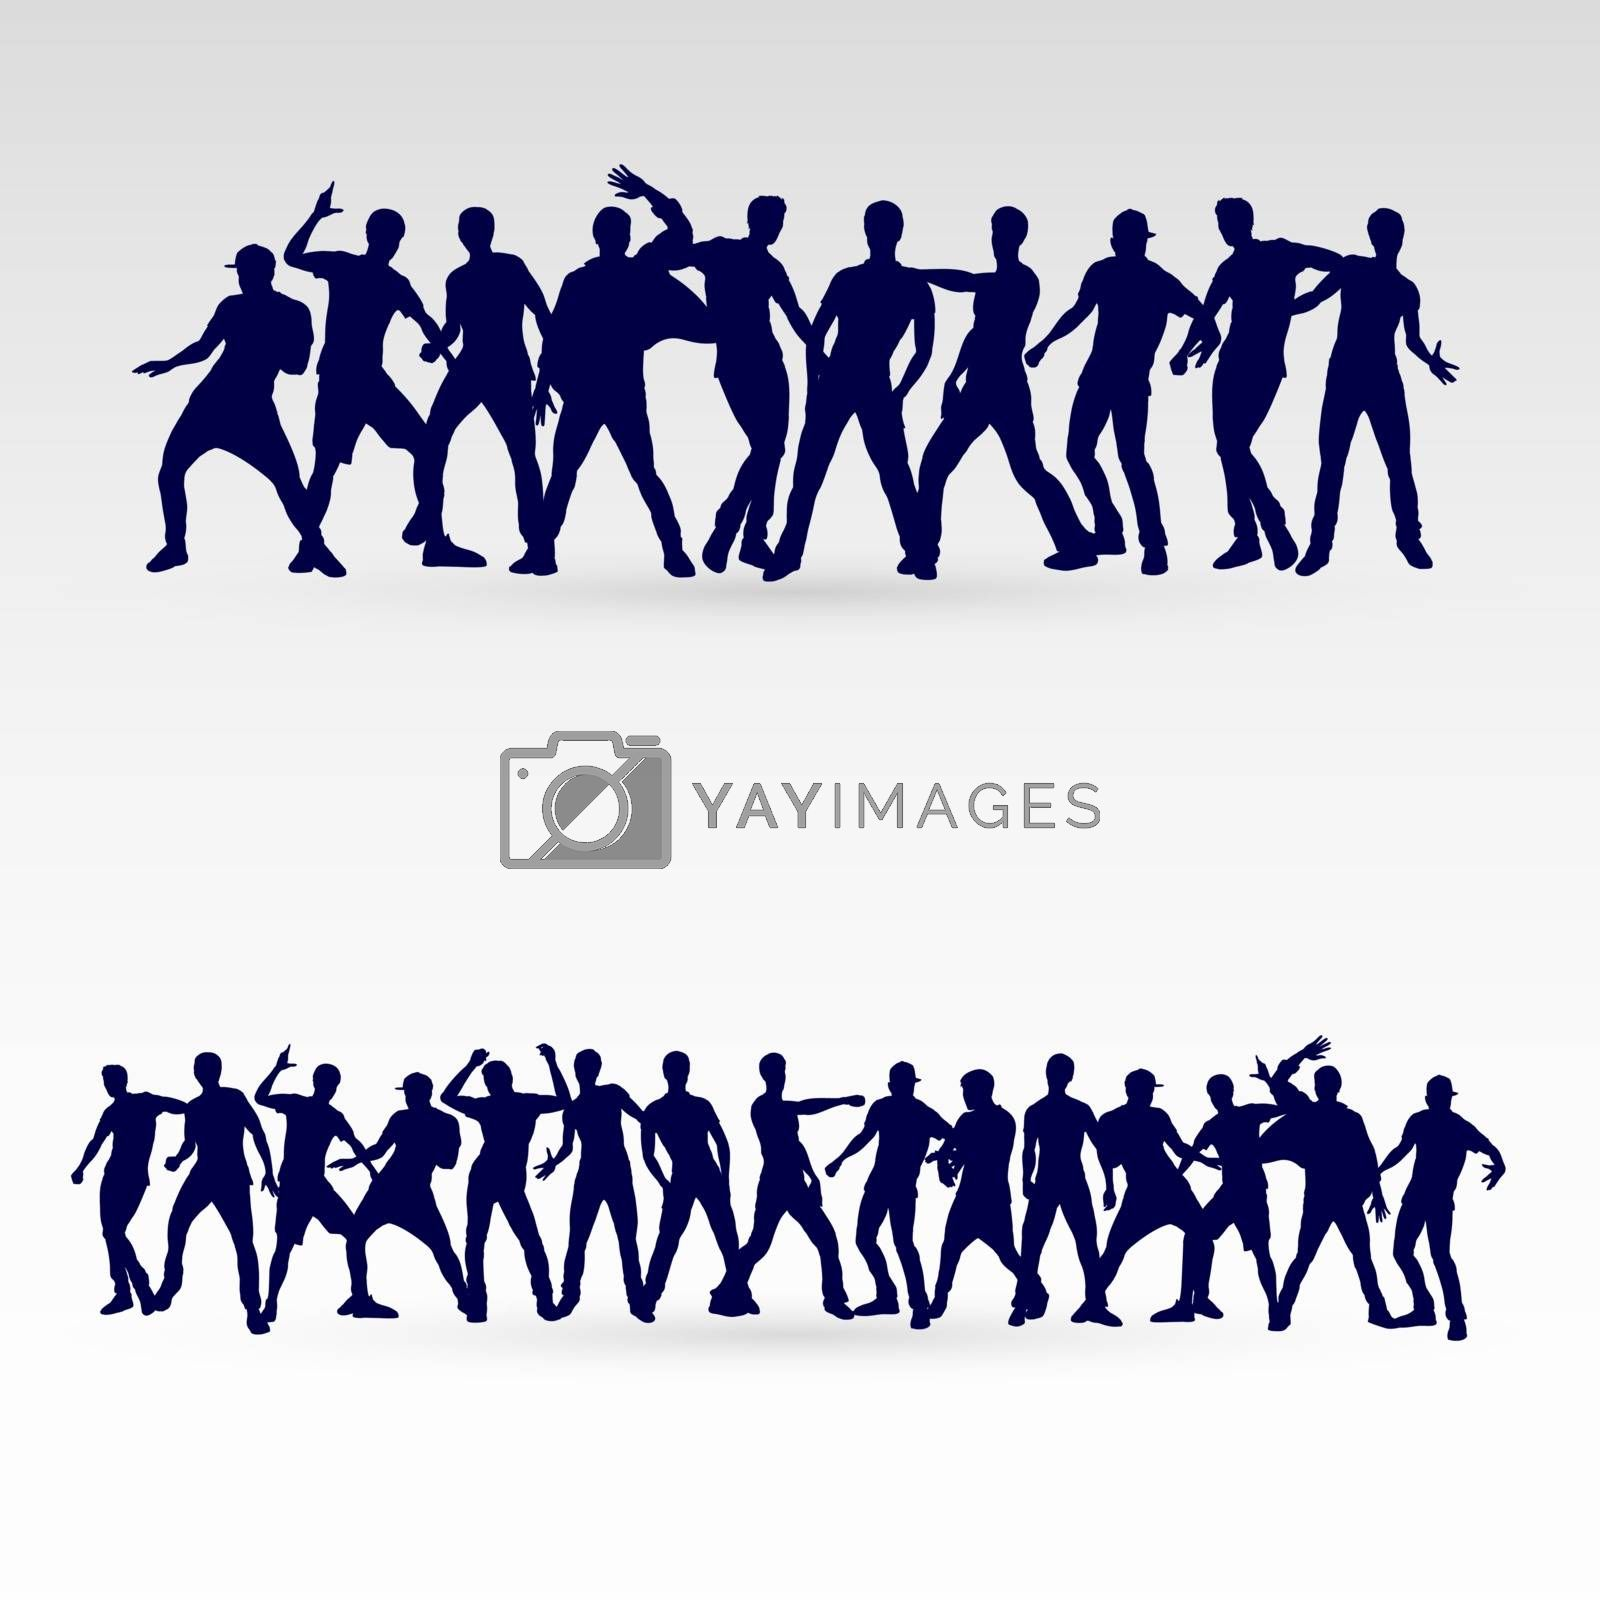 Large Set of Silhouette Dancing Males in Different Poses on the Dance Floor for Desgin Templates